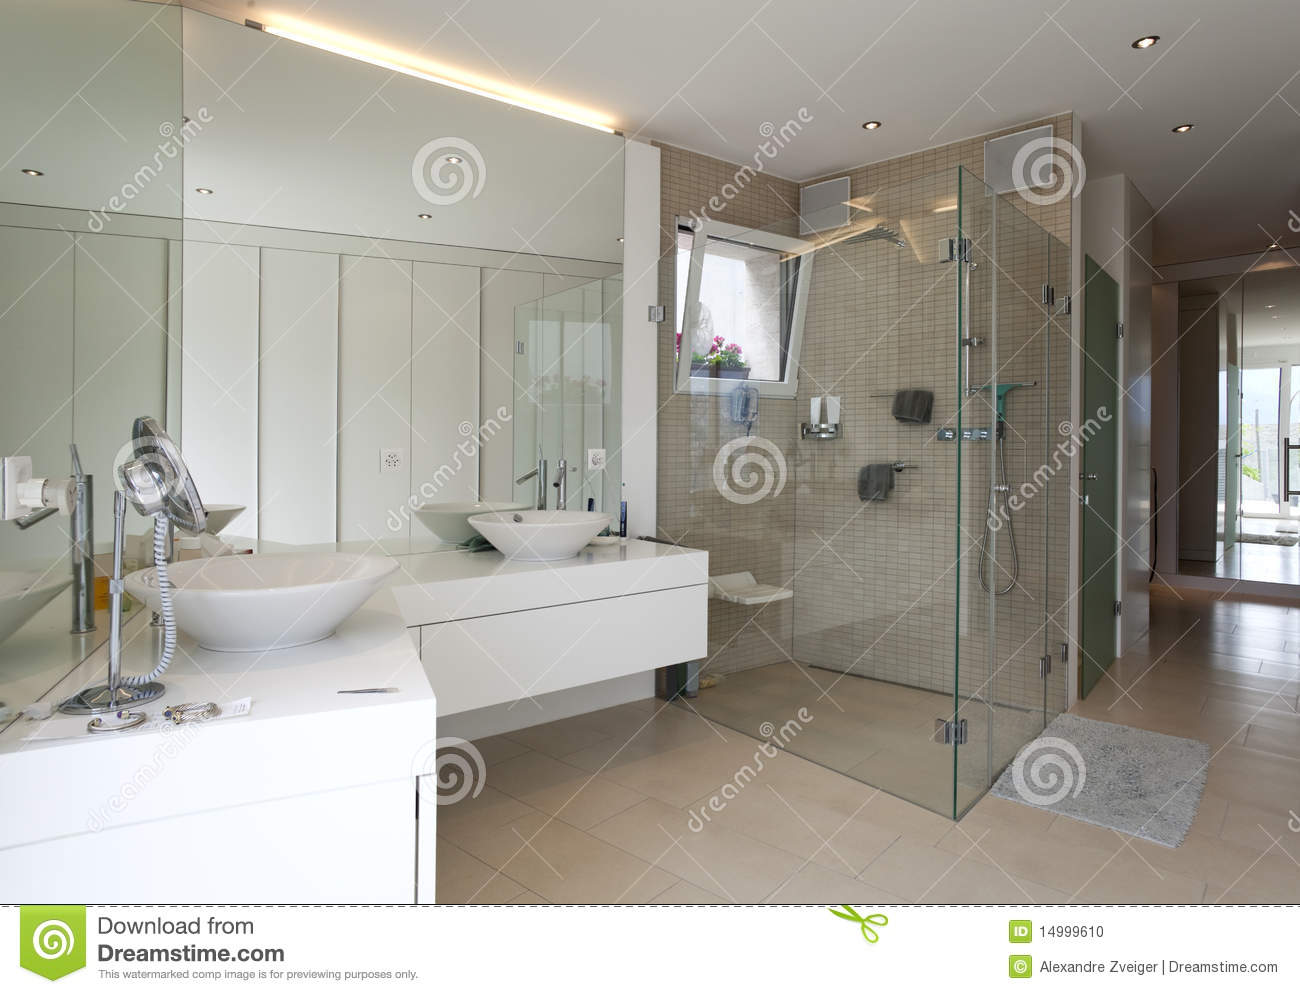 egglestonhall co in addition Carrie Fisher Debbie Reynolds Home Personal Items Sold as well Detail in addition Sunrooms likewise 06 Master Bathroom Umanee Mauritius Hotel Resort Architect Interior Design Yuni Design Consultant Bali. on bathrooms house